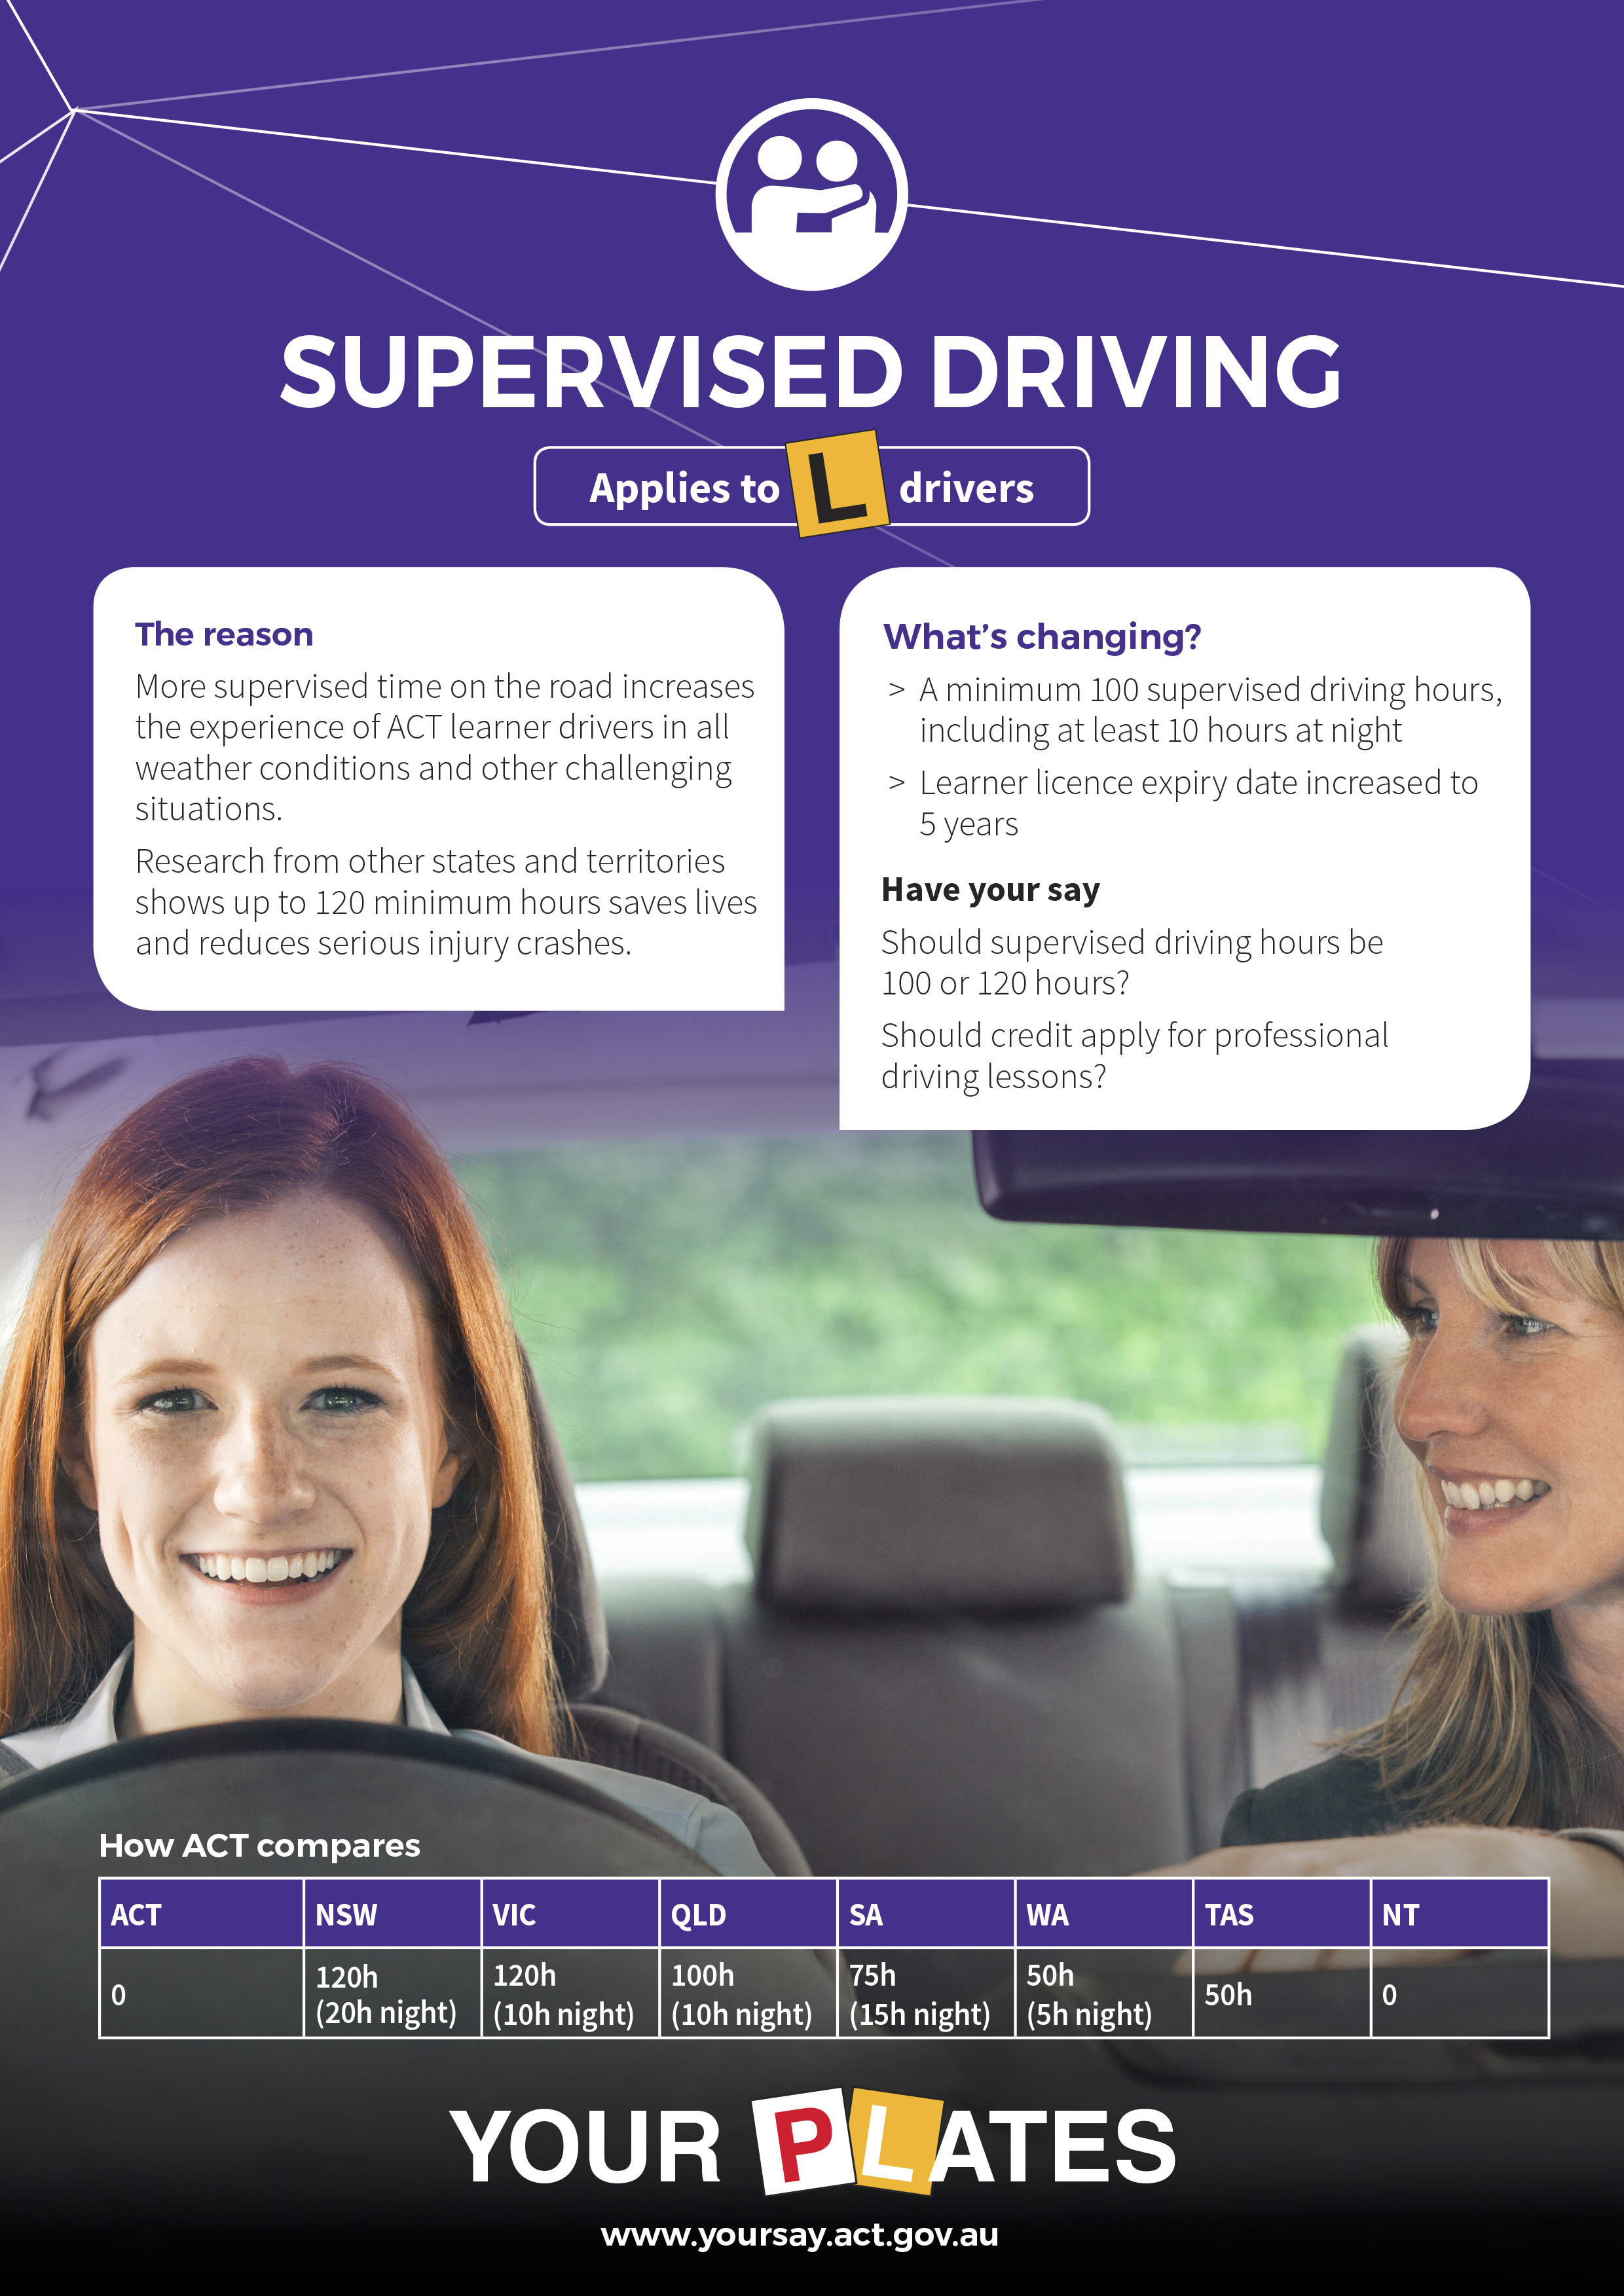 More supervised time on the road increases the experience of ACT learner drivers in all weather condistions and other challenging situations.